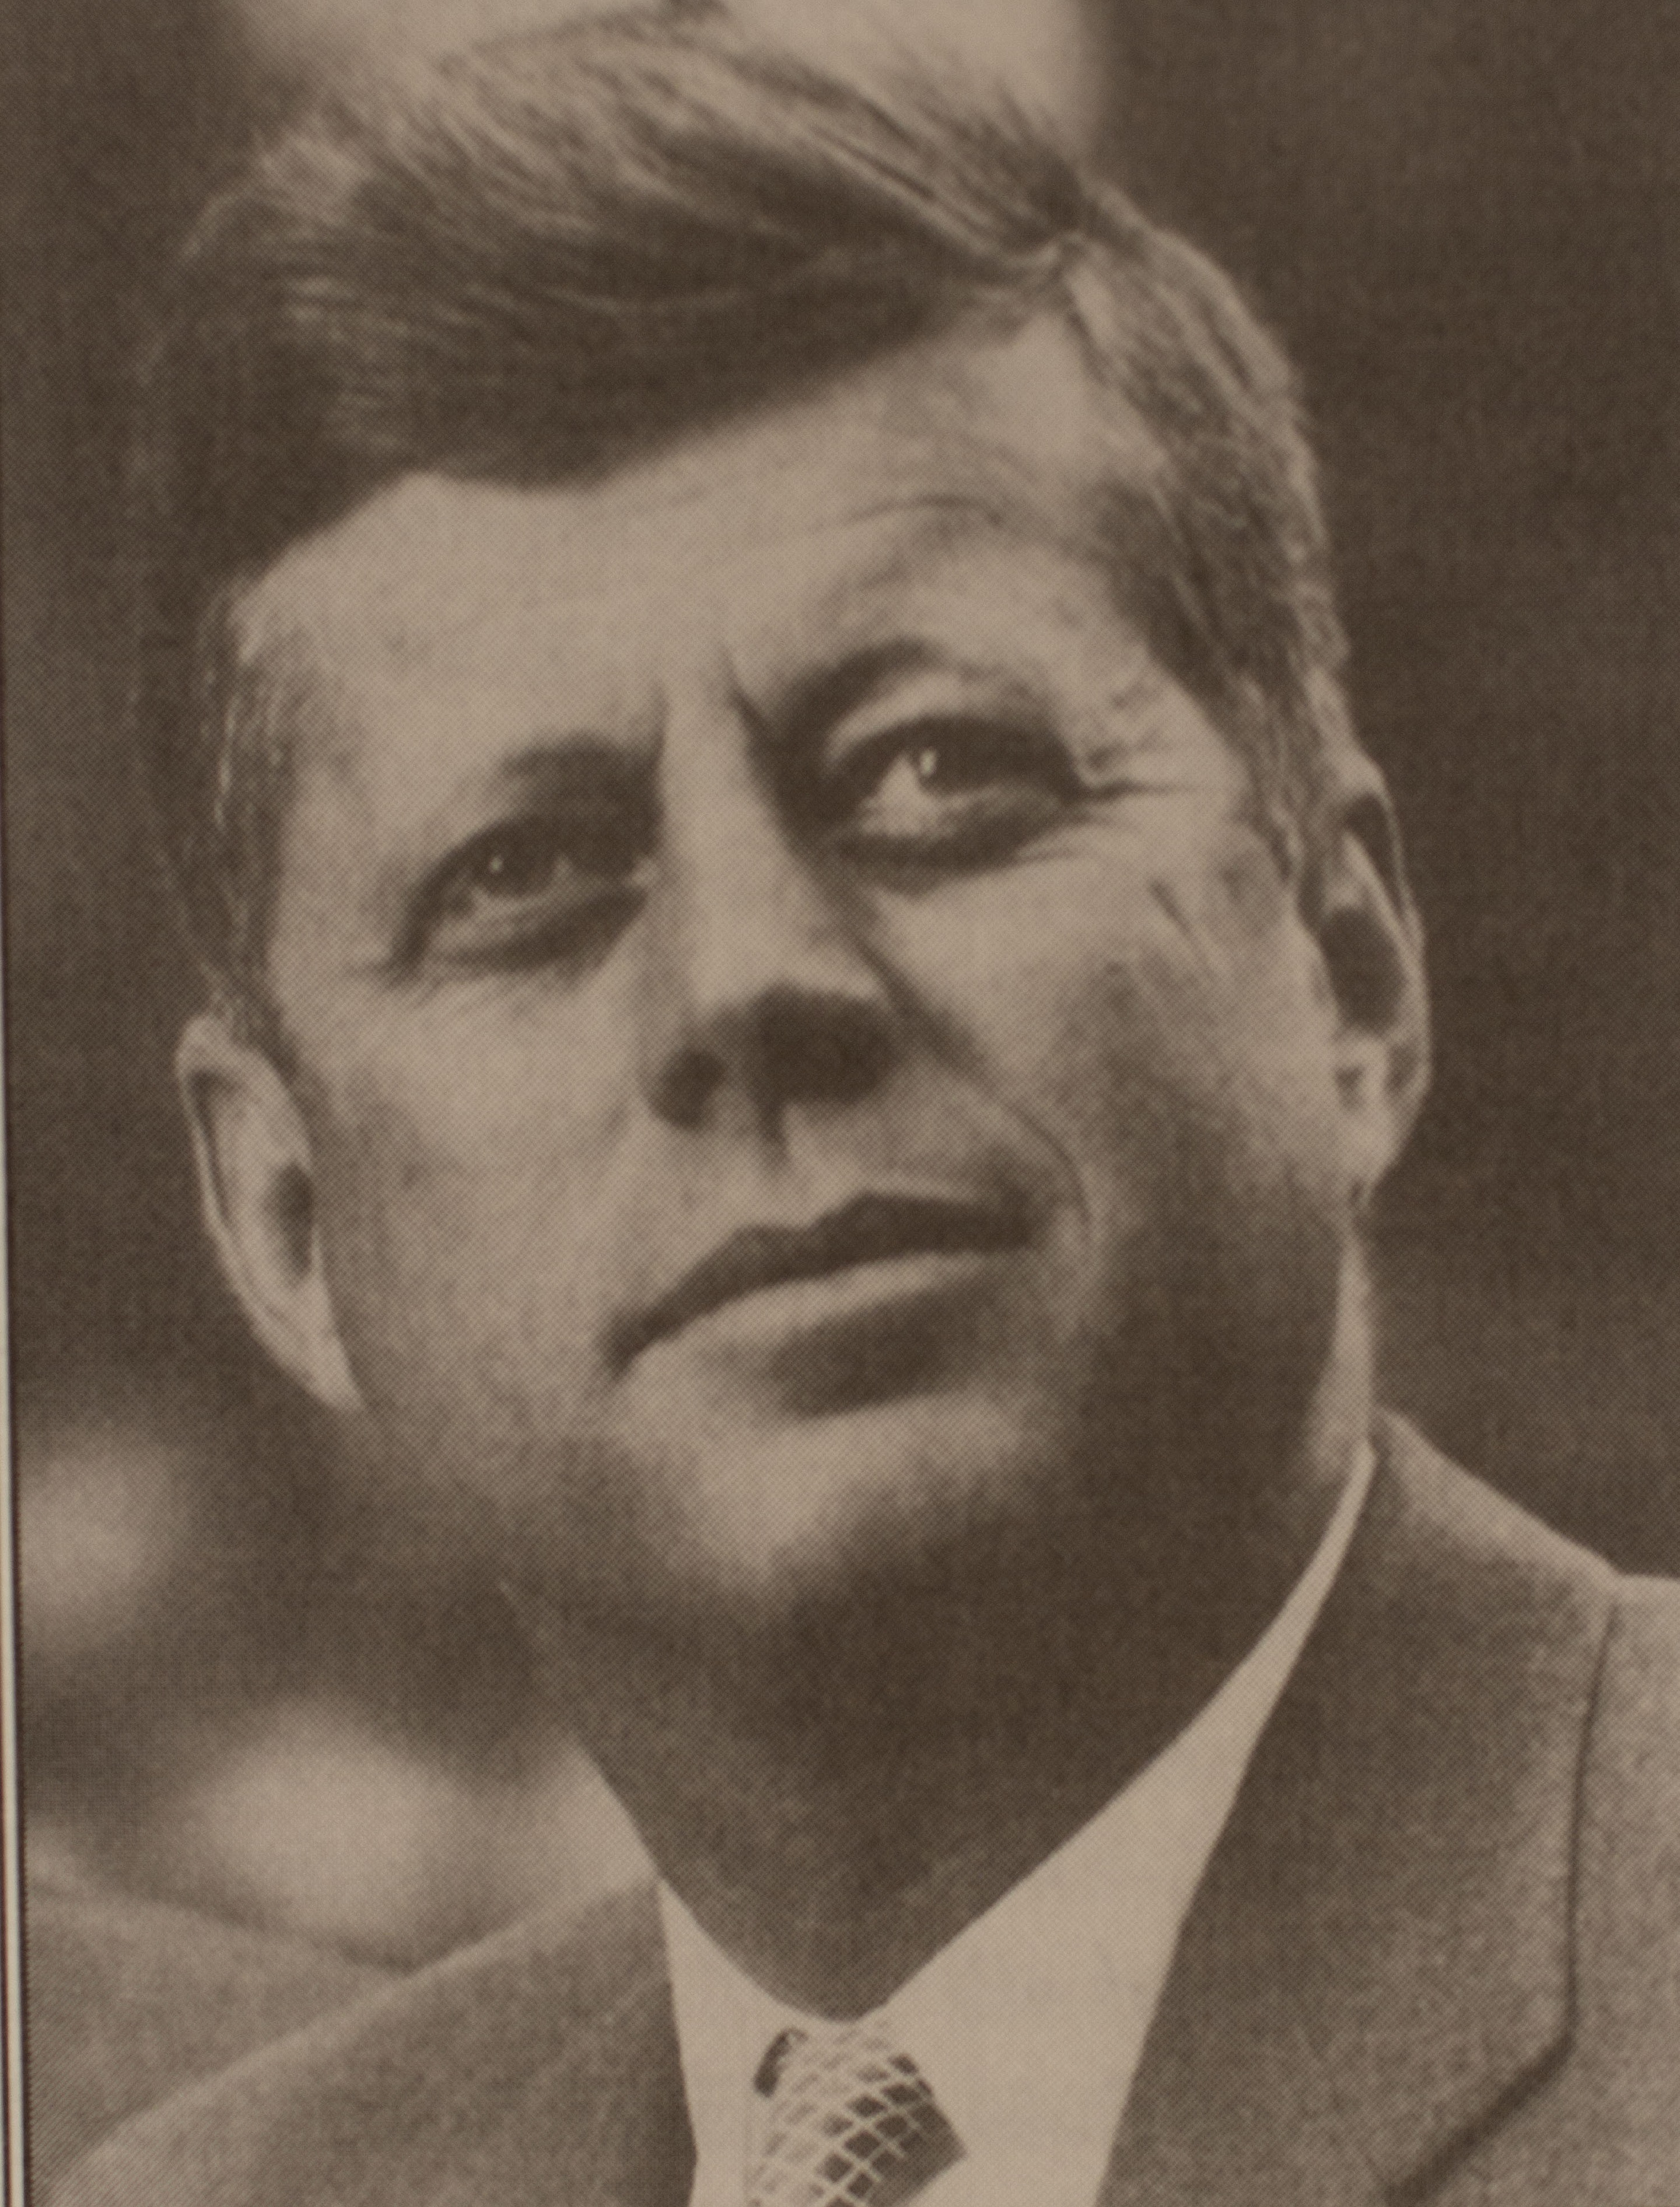 Photograph of President Kennedy